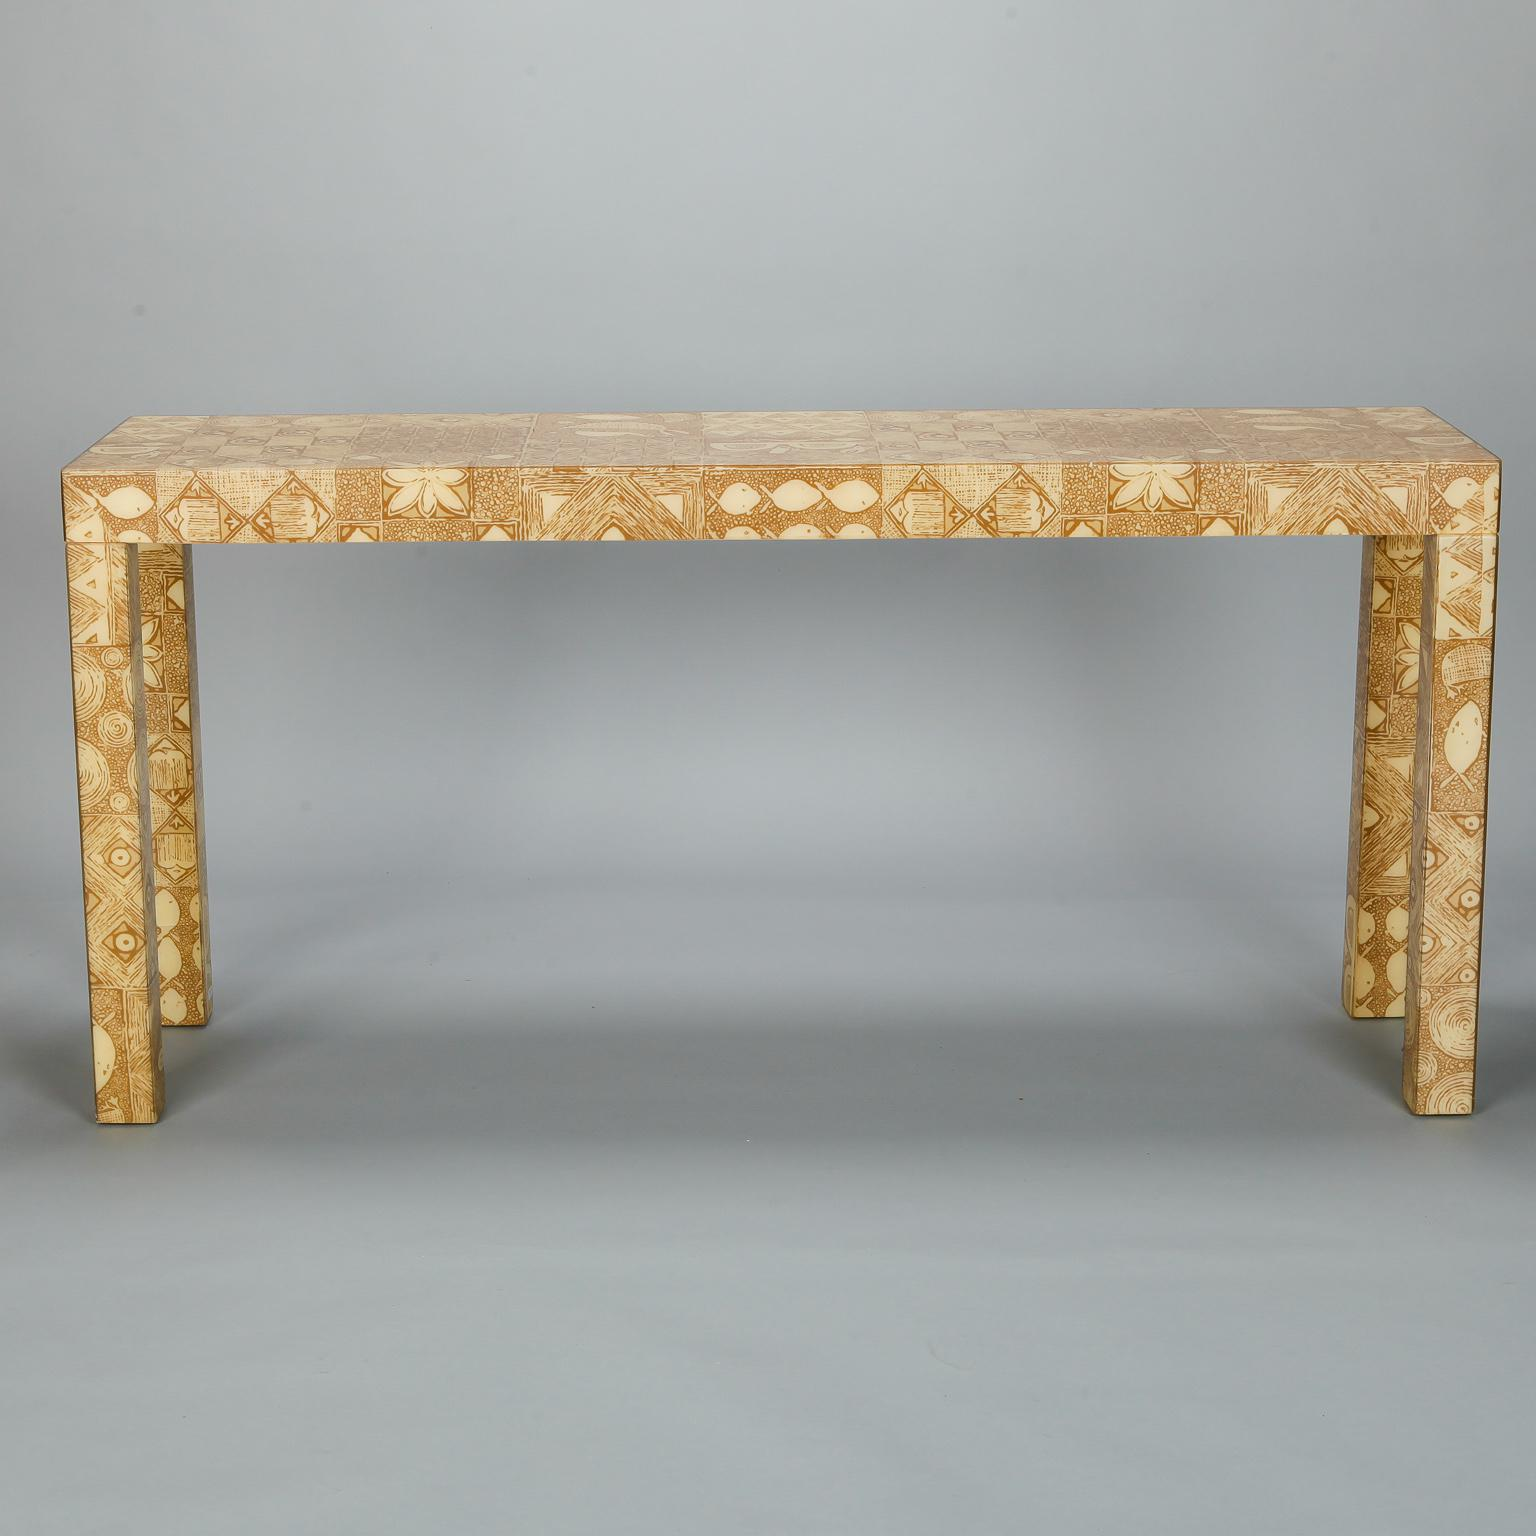 Circa 1970s Parsons Style Console Table Has A Wood Base Covered With Taupe  And White Printed